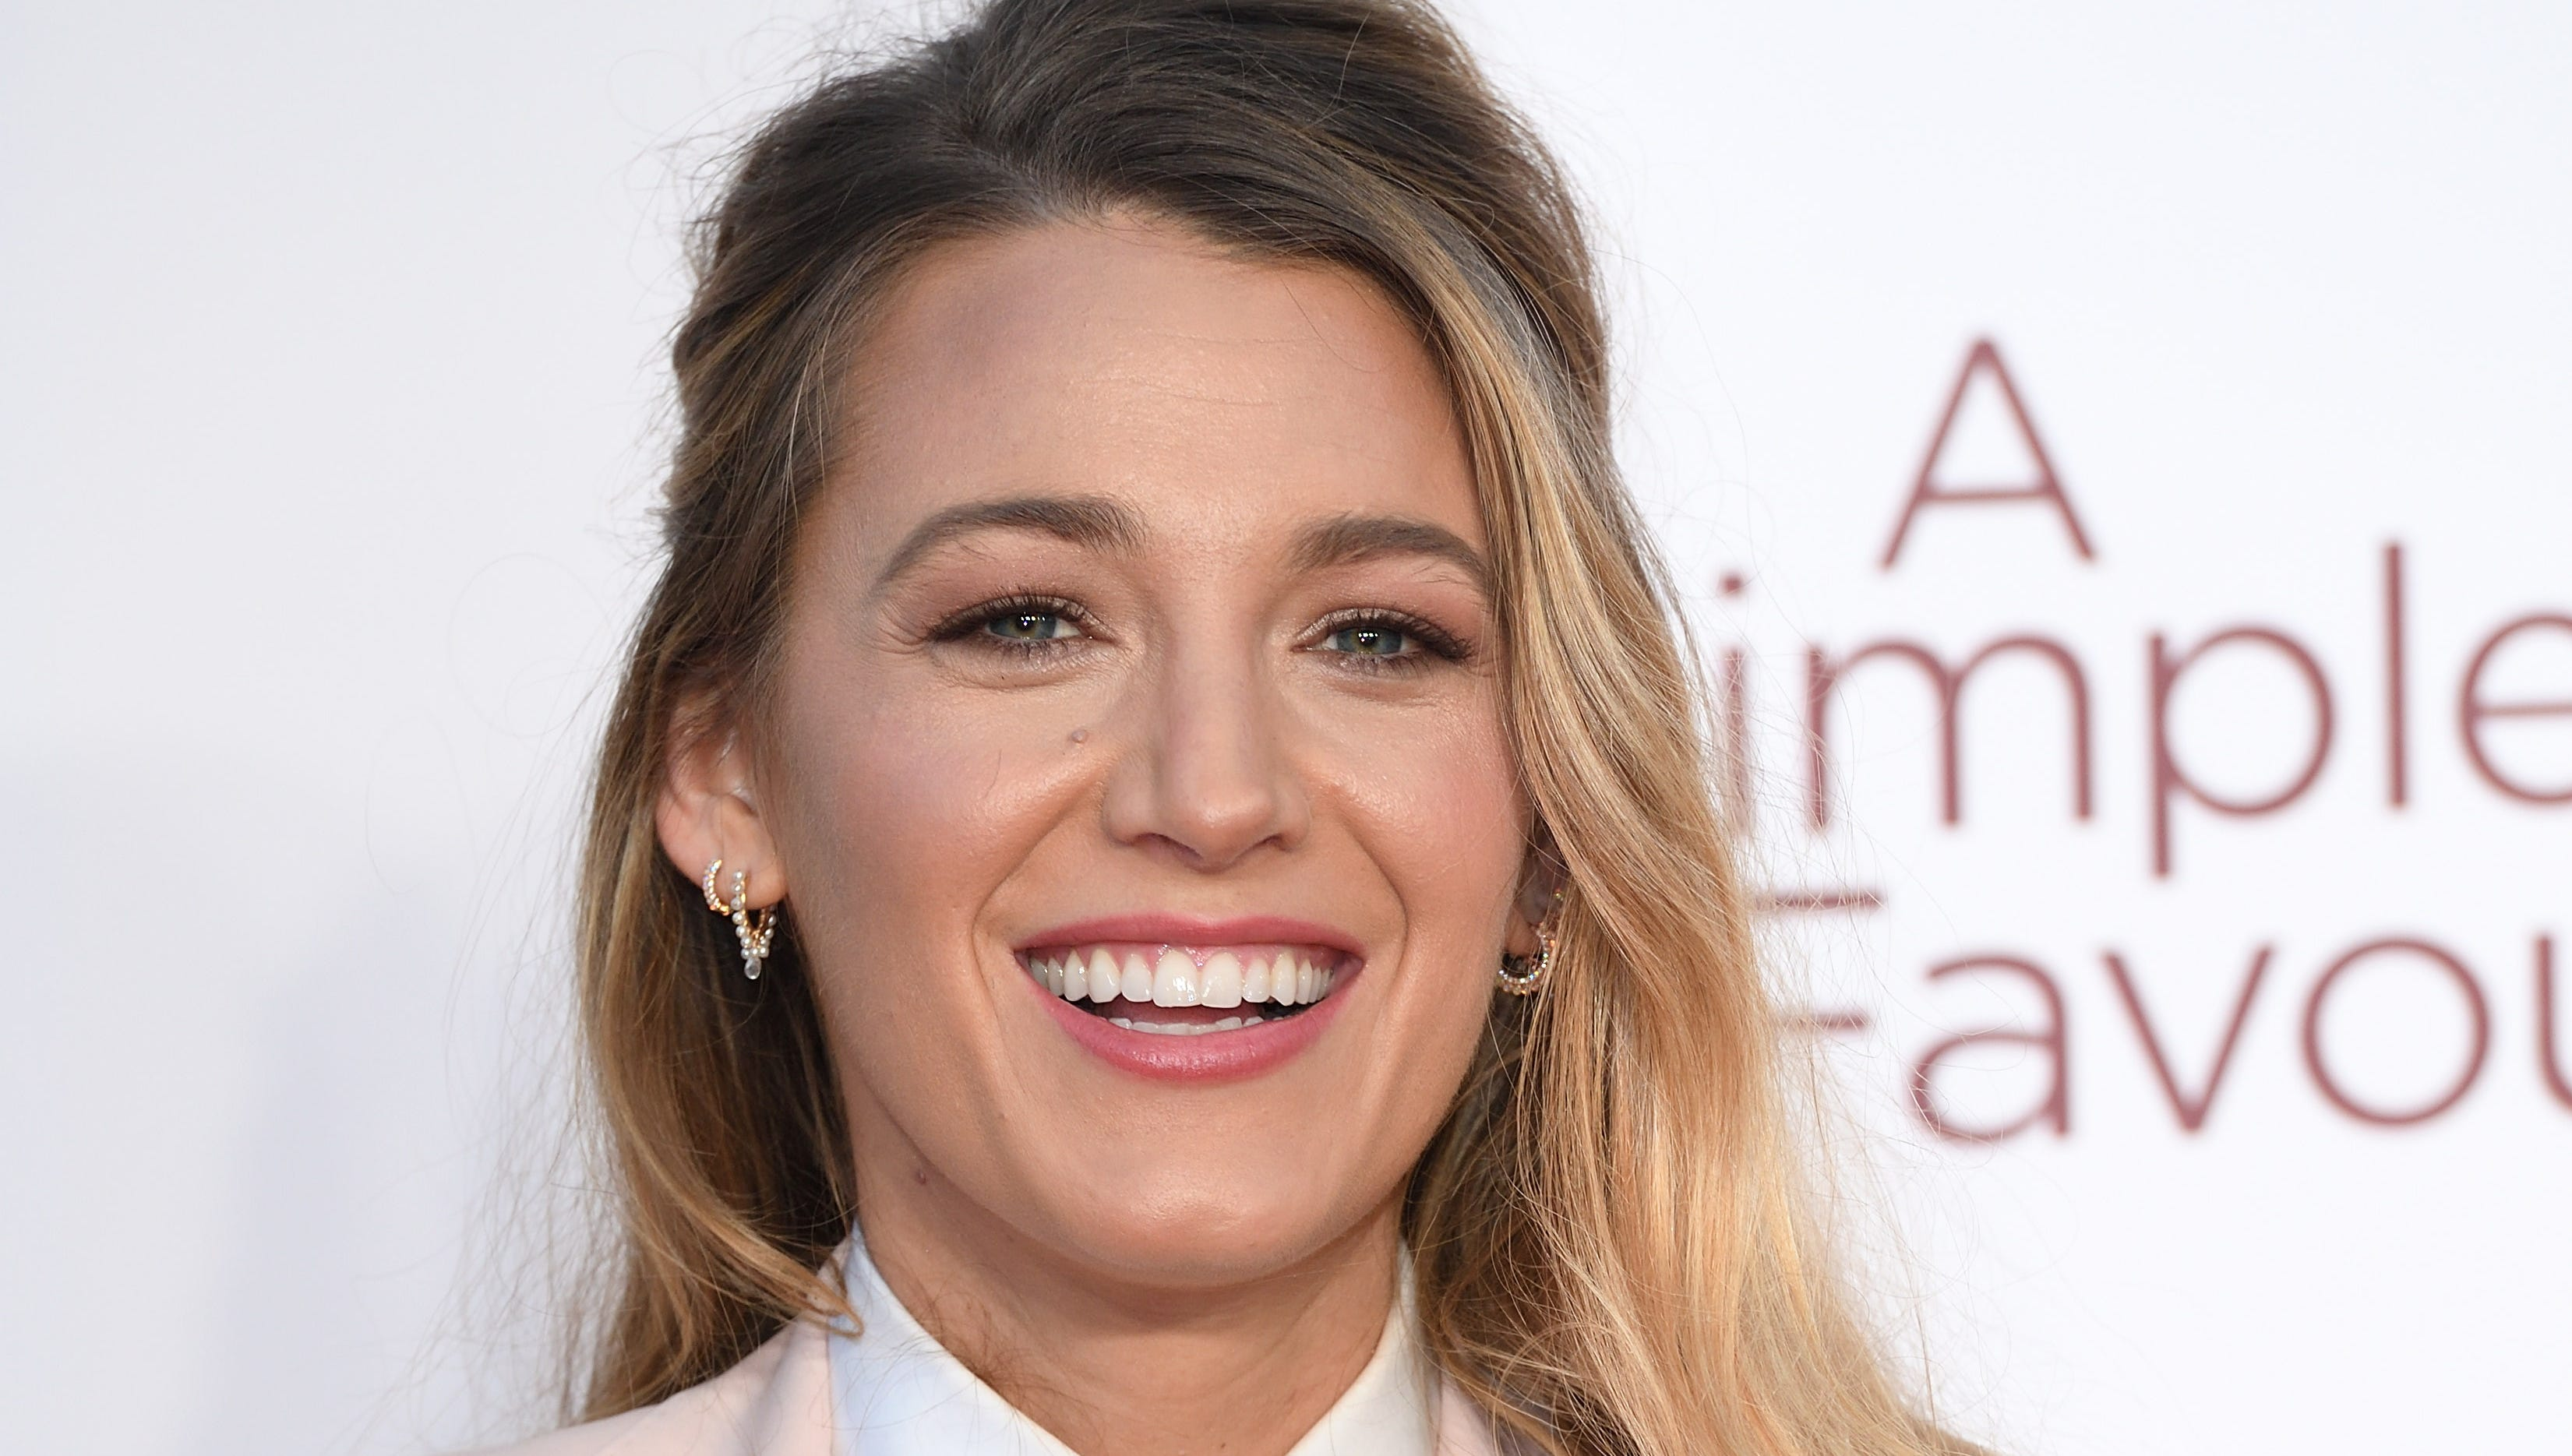 Blake Lively attends the UK premiere of 'A Simple Favour' at BFI Southbank on September 17, 2018 in London, England.